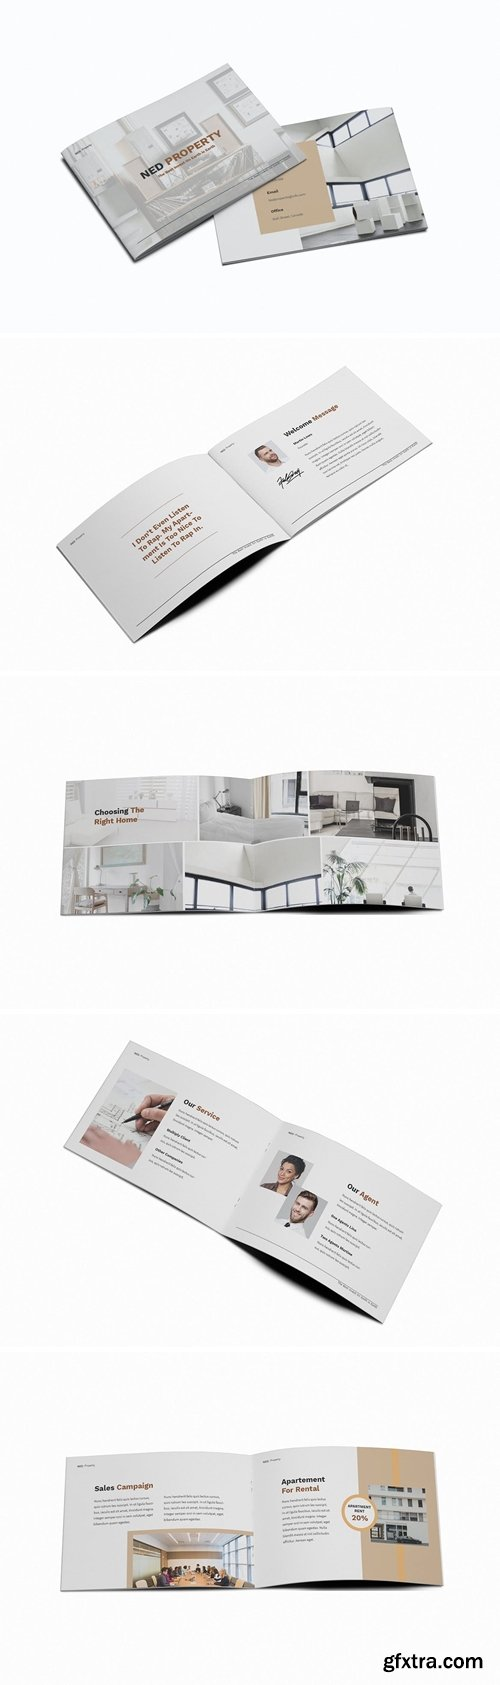 Apartment Property A5 Brochure Template